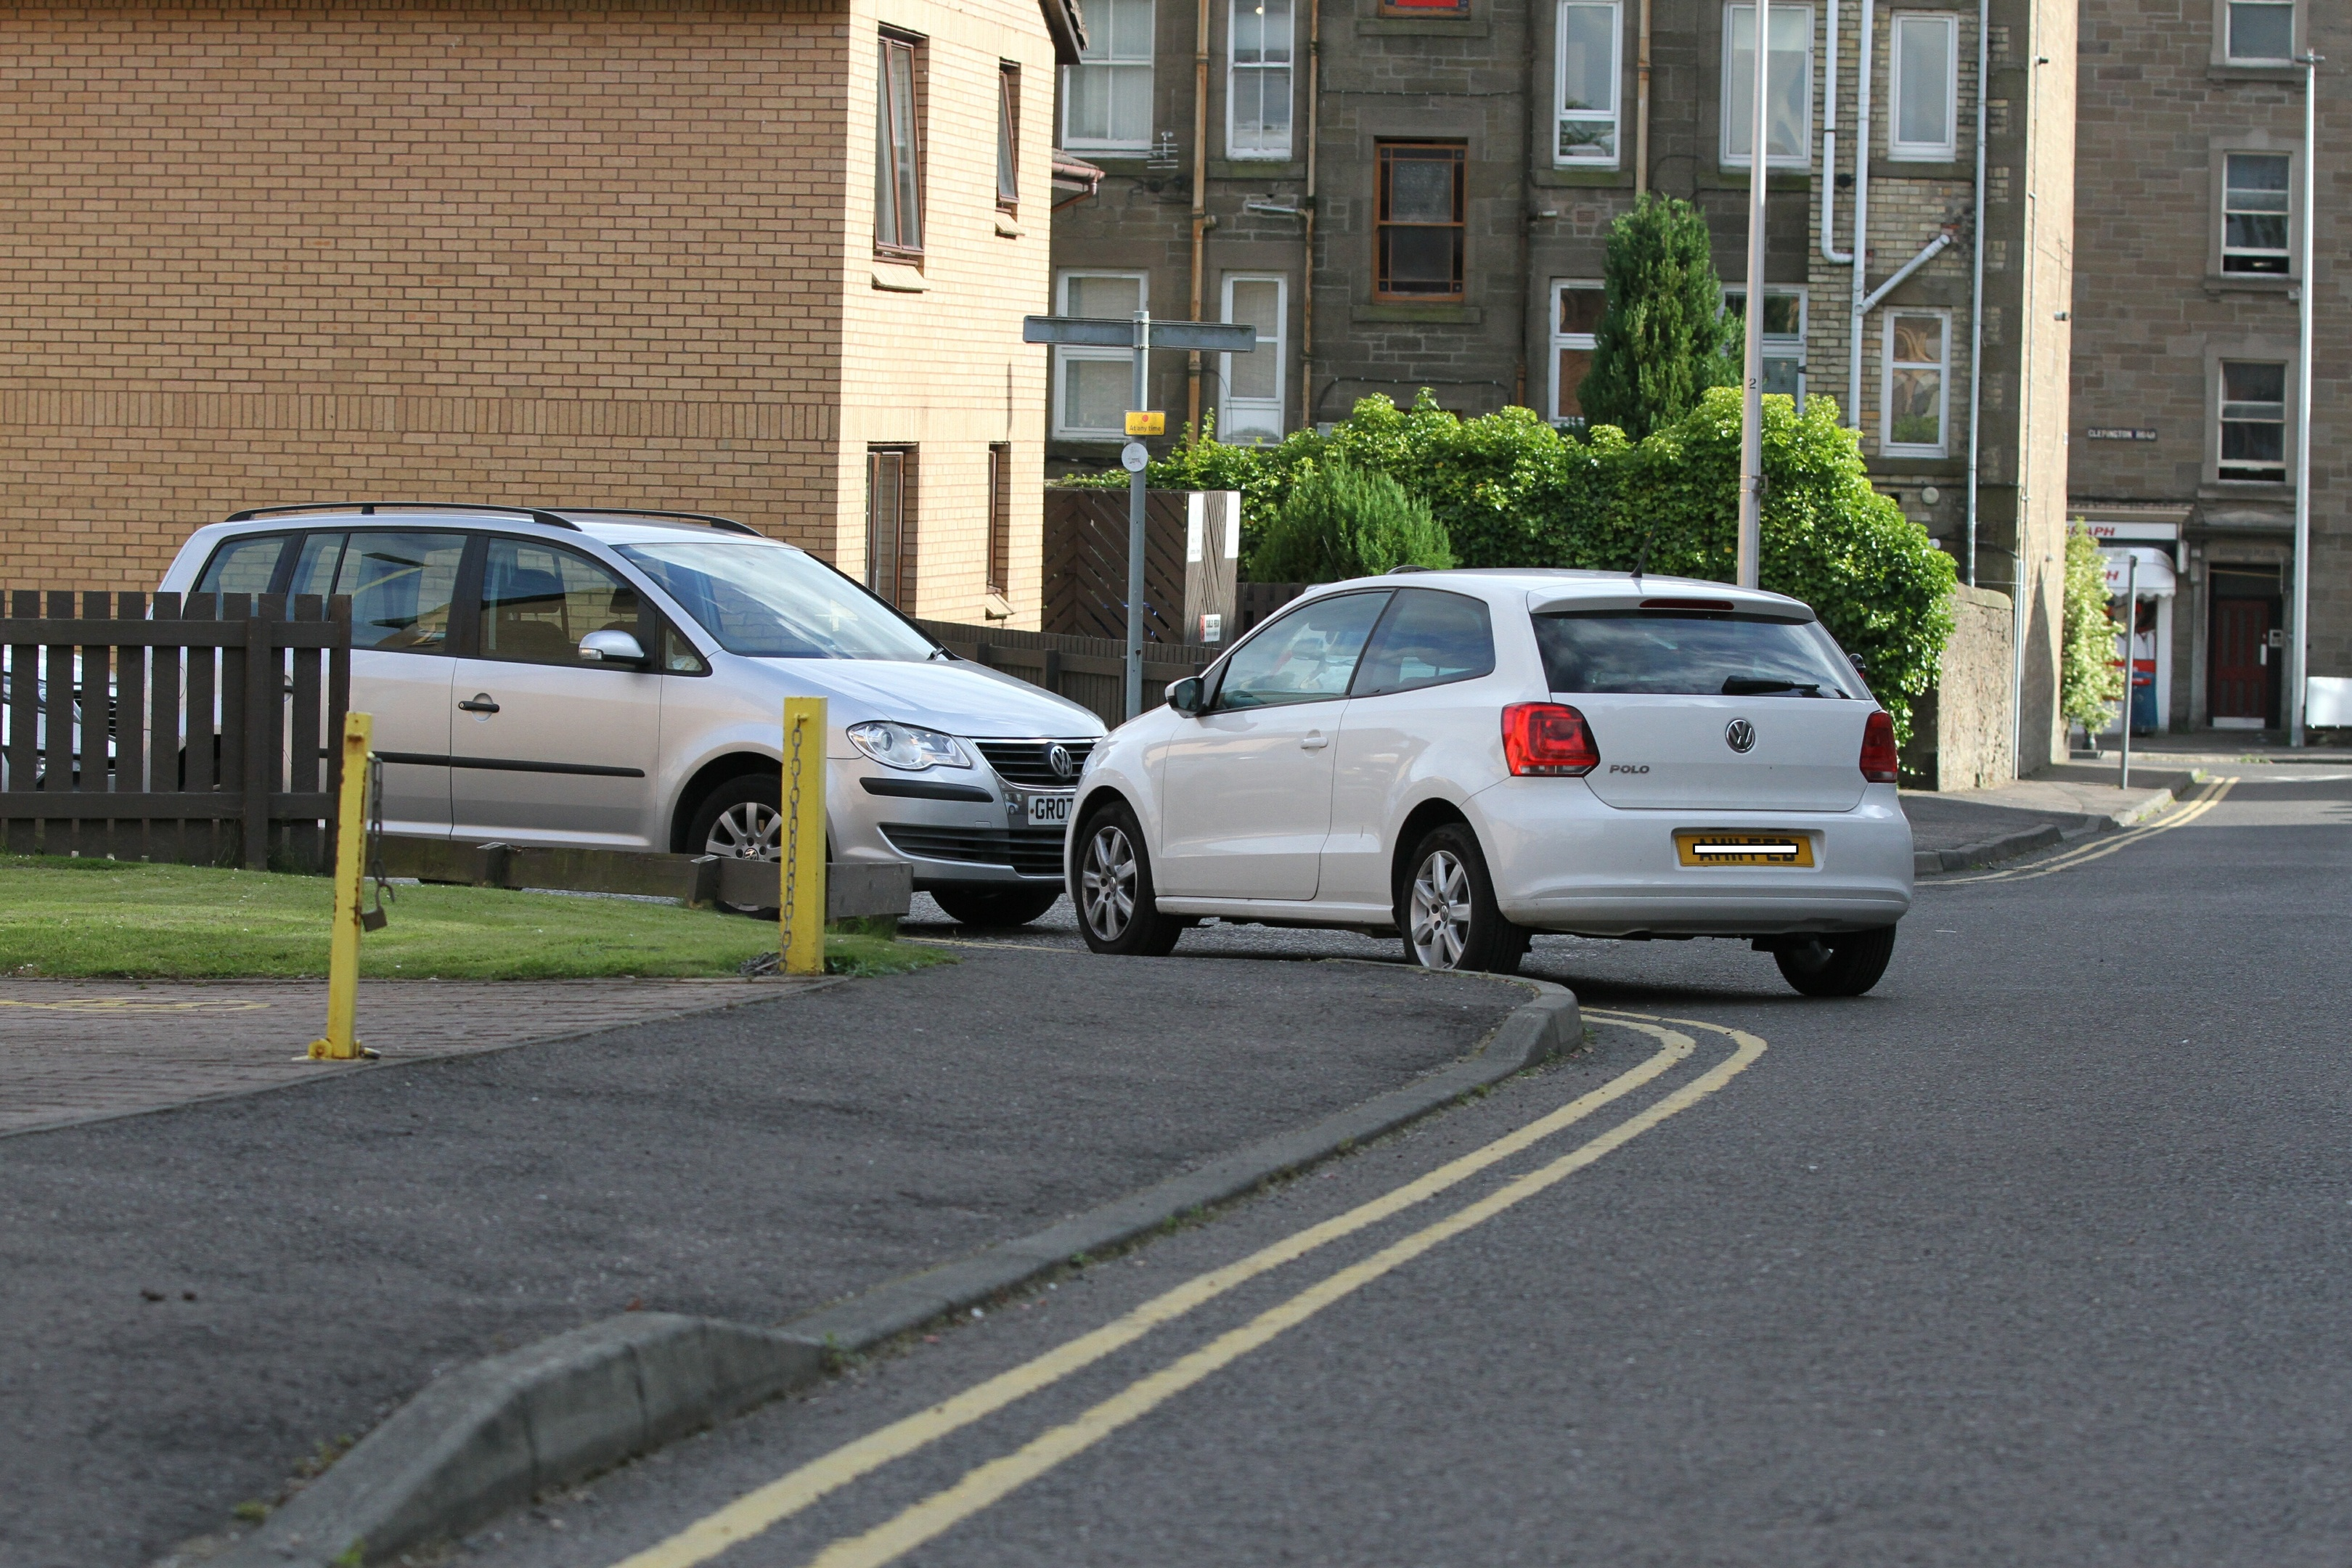 Cars parked on double yellow lines on Cardross Street.